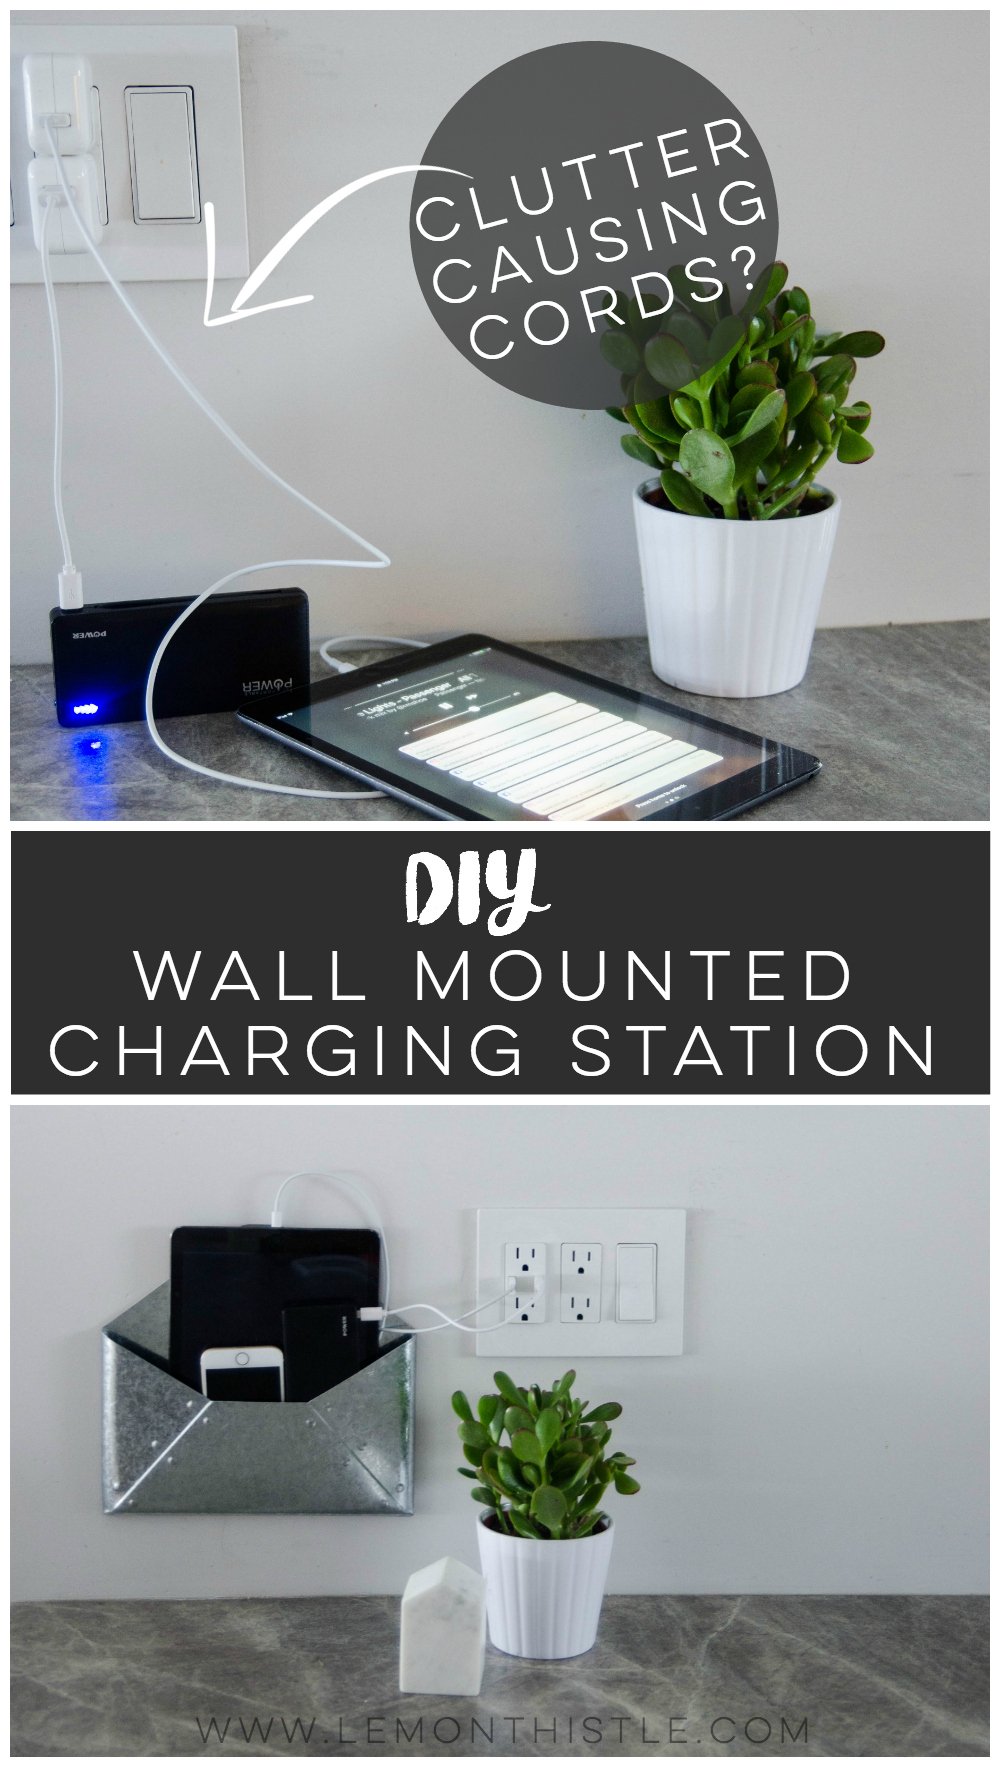 DIY Wall Mounted Charging Station- I love that this doesn't clutter up any counter space - the USB plug is perfect!